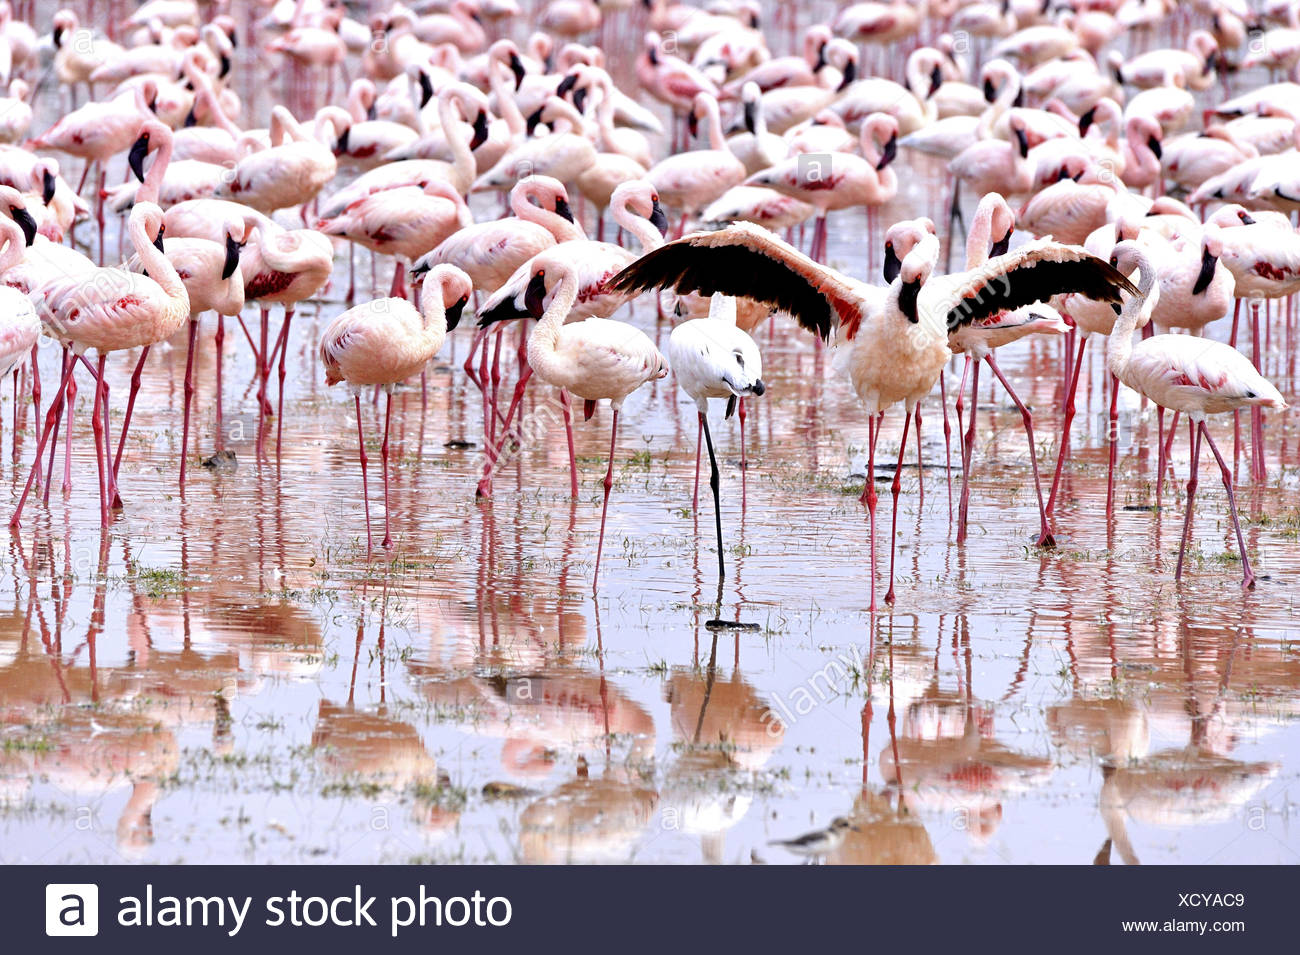 Lesser Flamingo cleaning its plumes - Stock Image